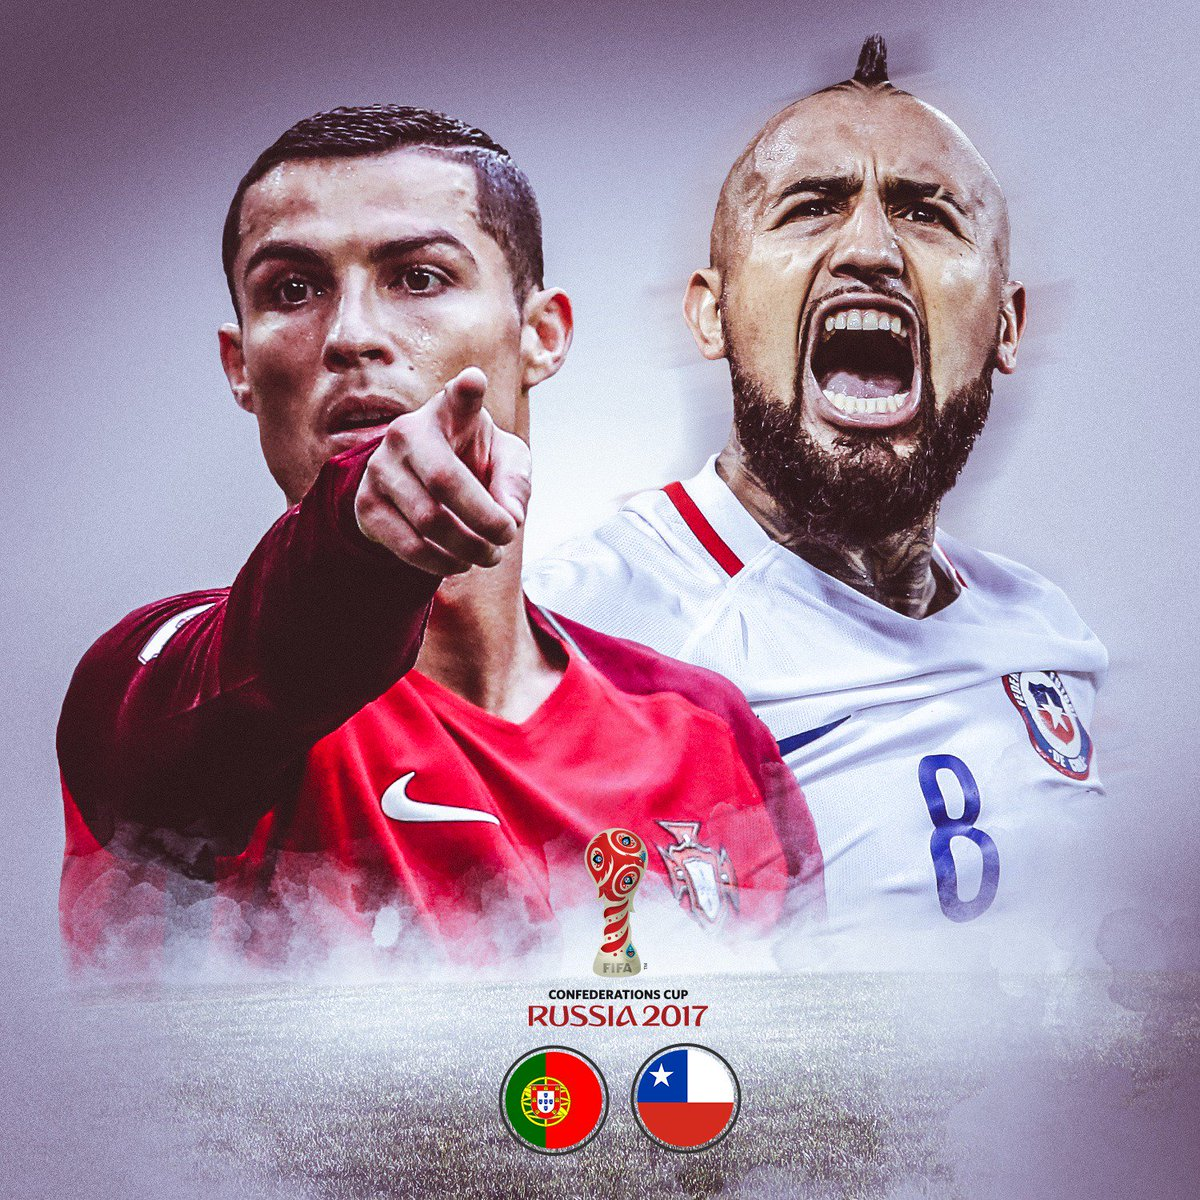 MATCHDAY! 🇵🇹 vs. 🇨🇱  @Cristiano vs. @kingarturo23  Was sind eure Tipps...